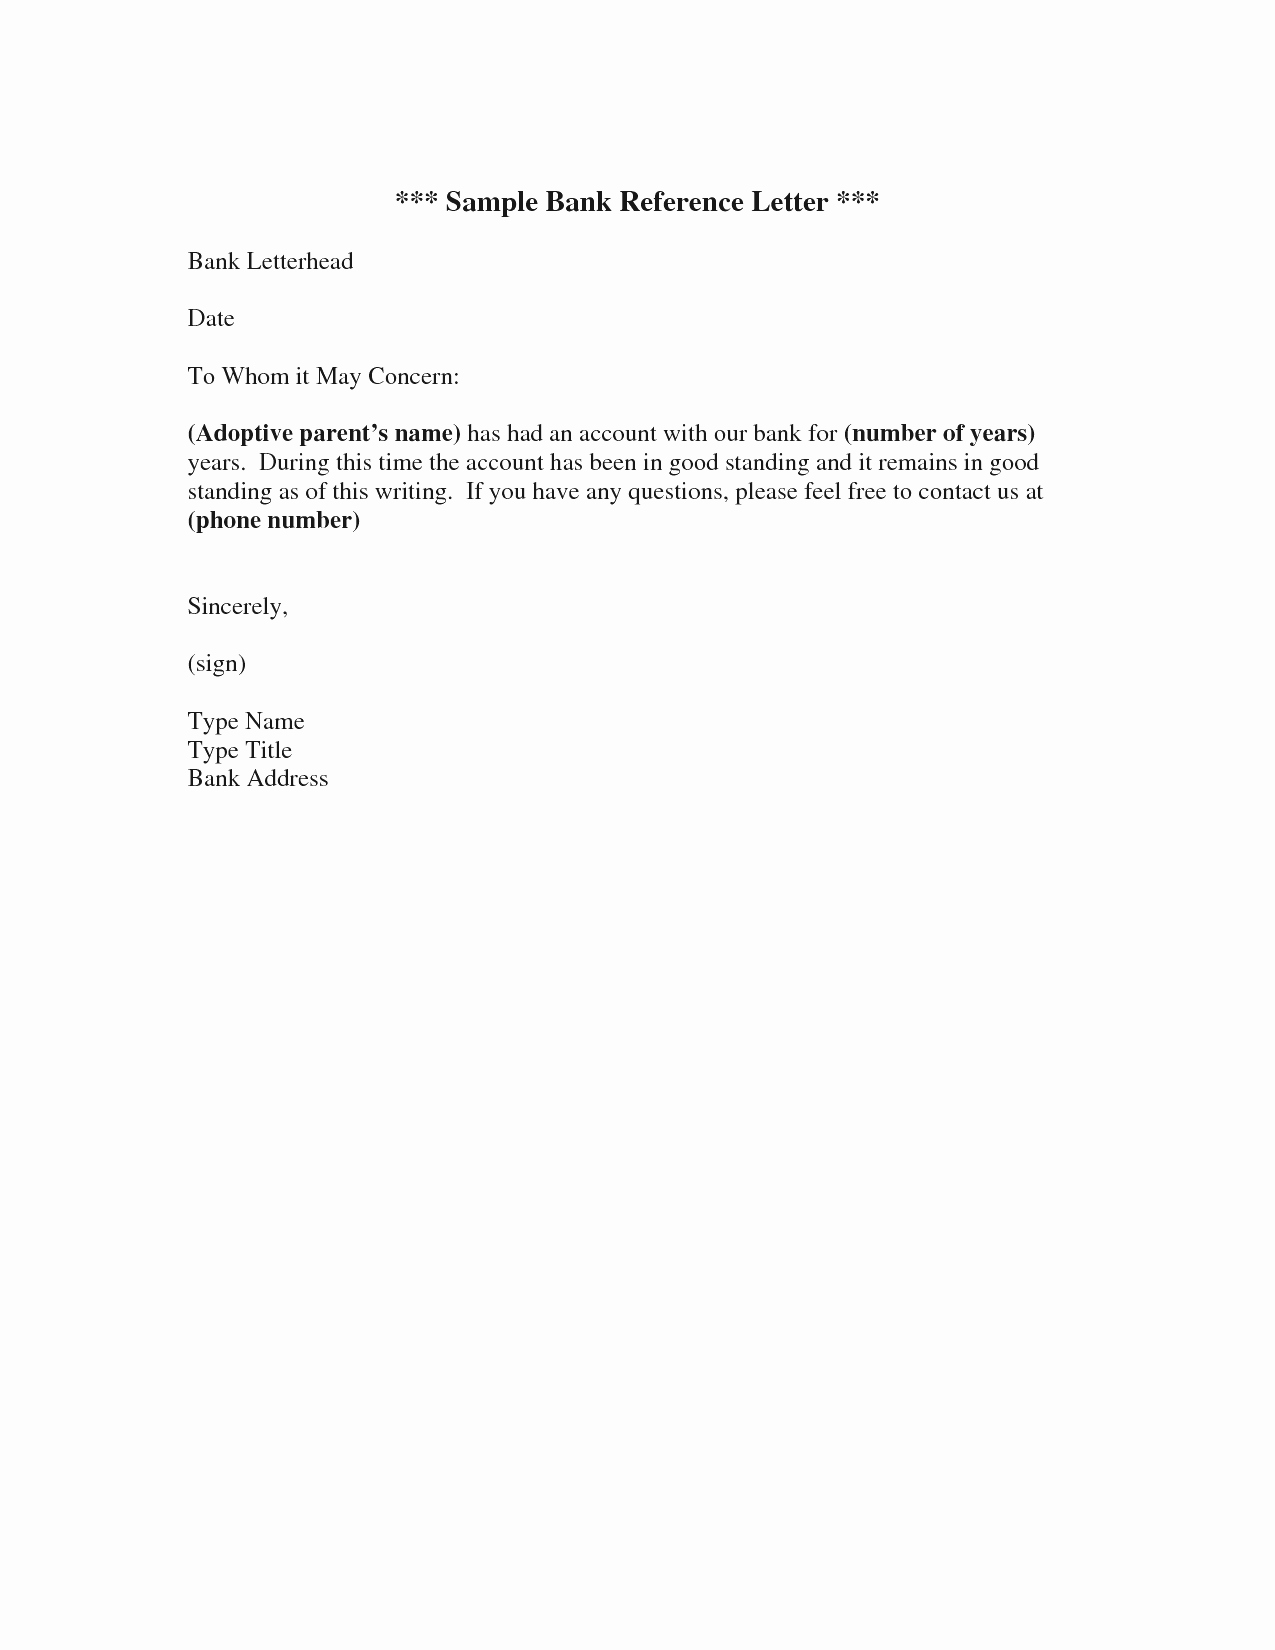 Referral Letter Sample for Employment Unique Business Reference Letter Template Example Mughals